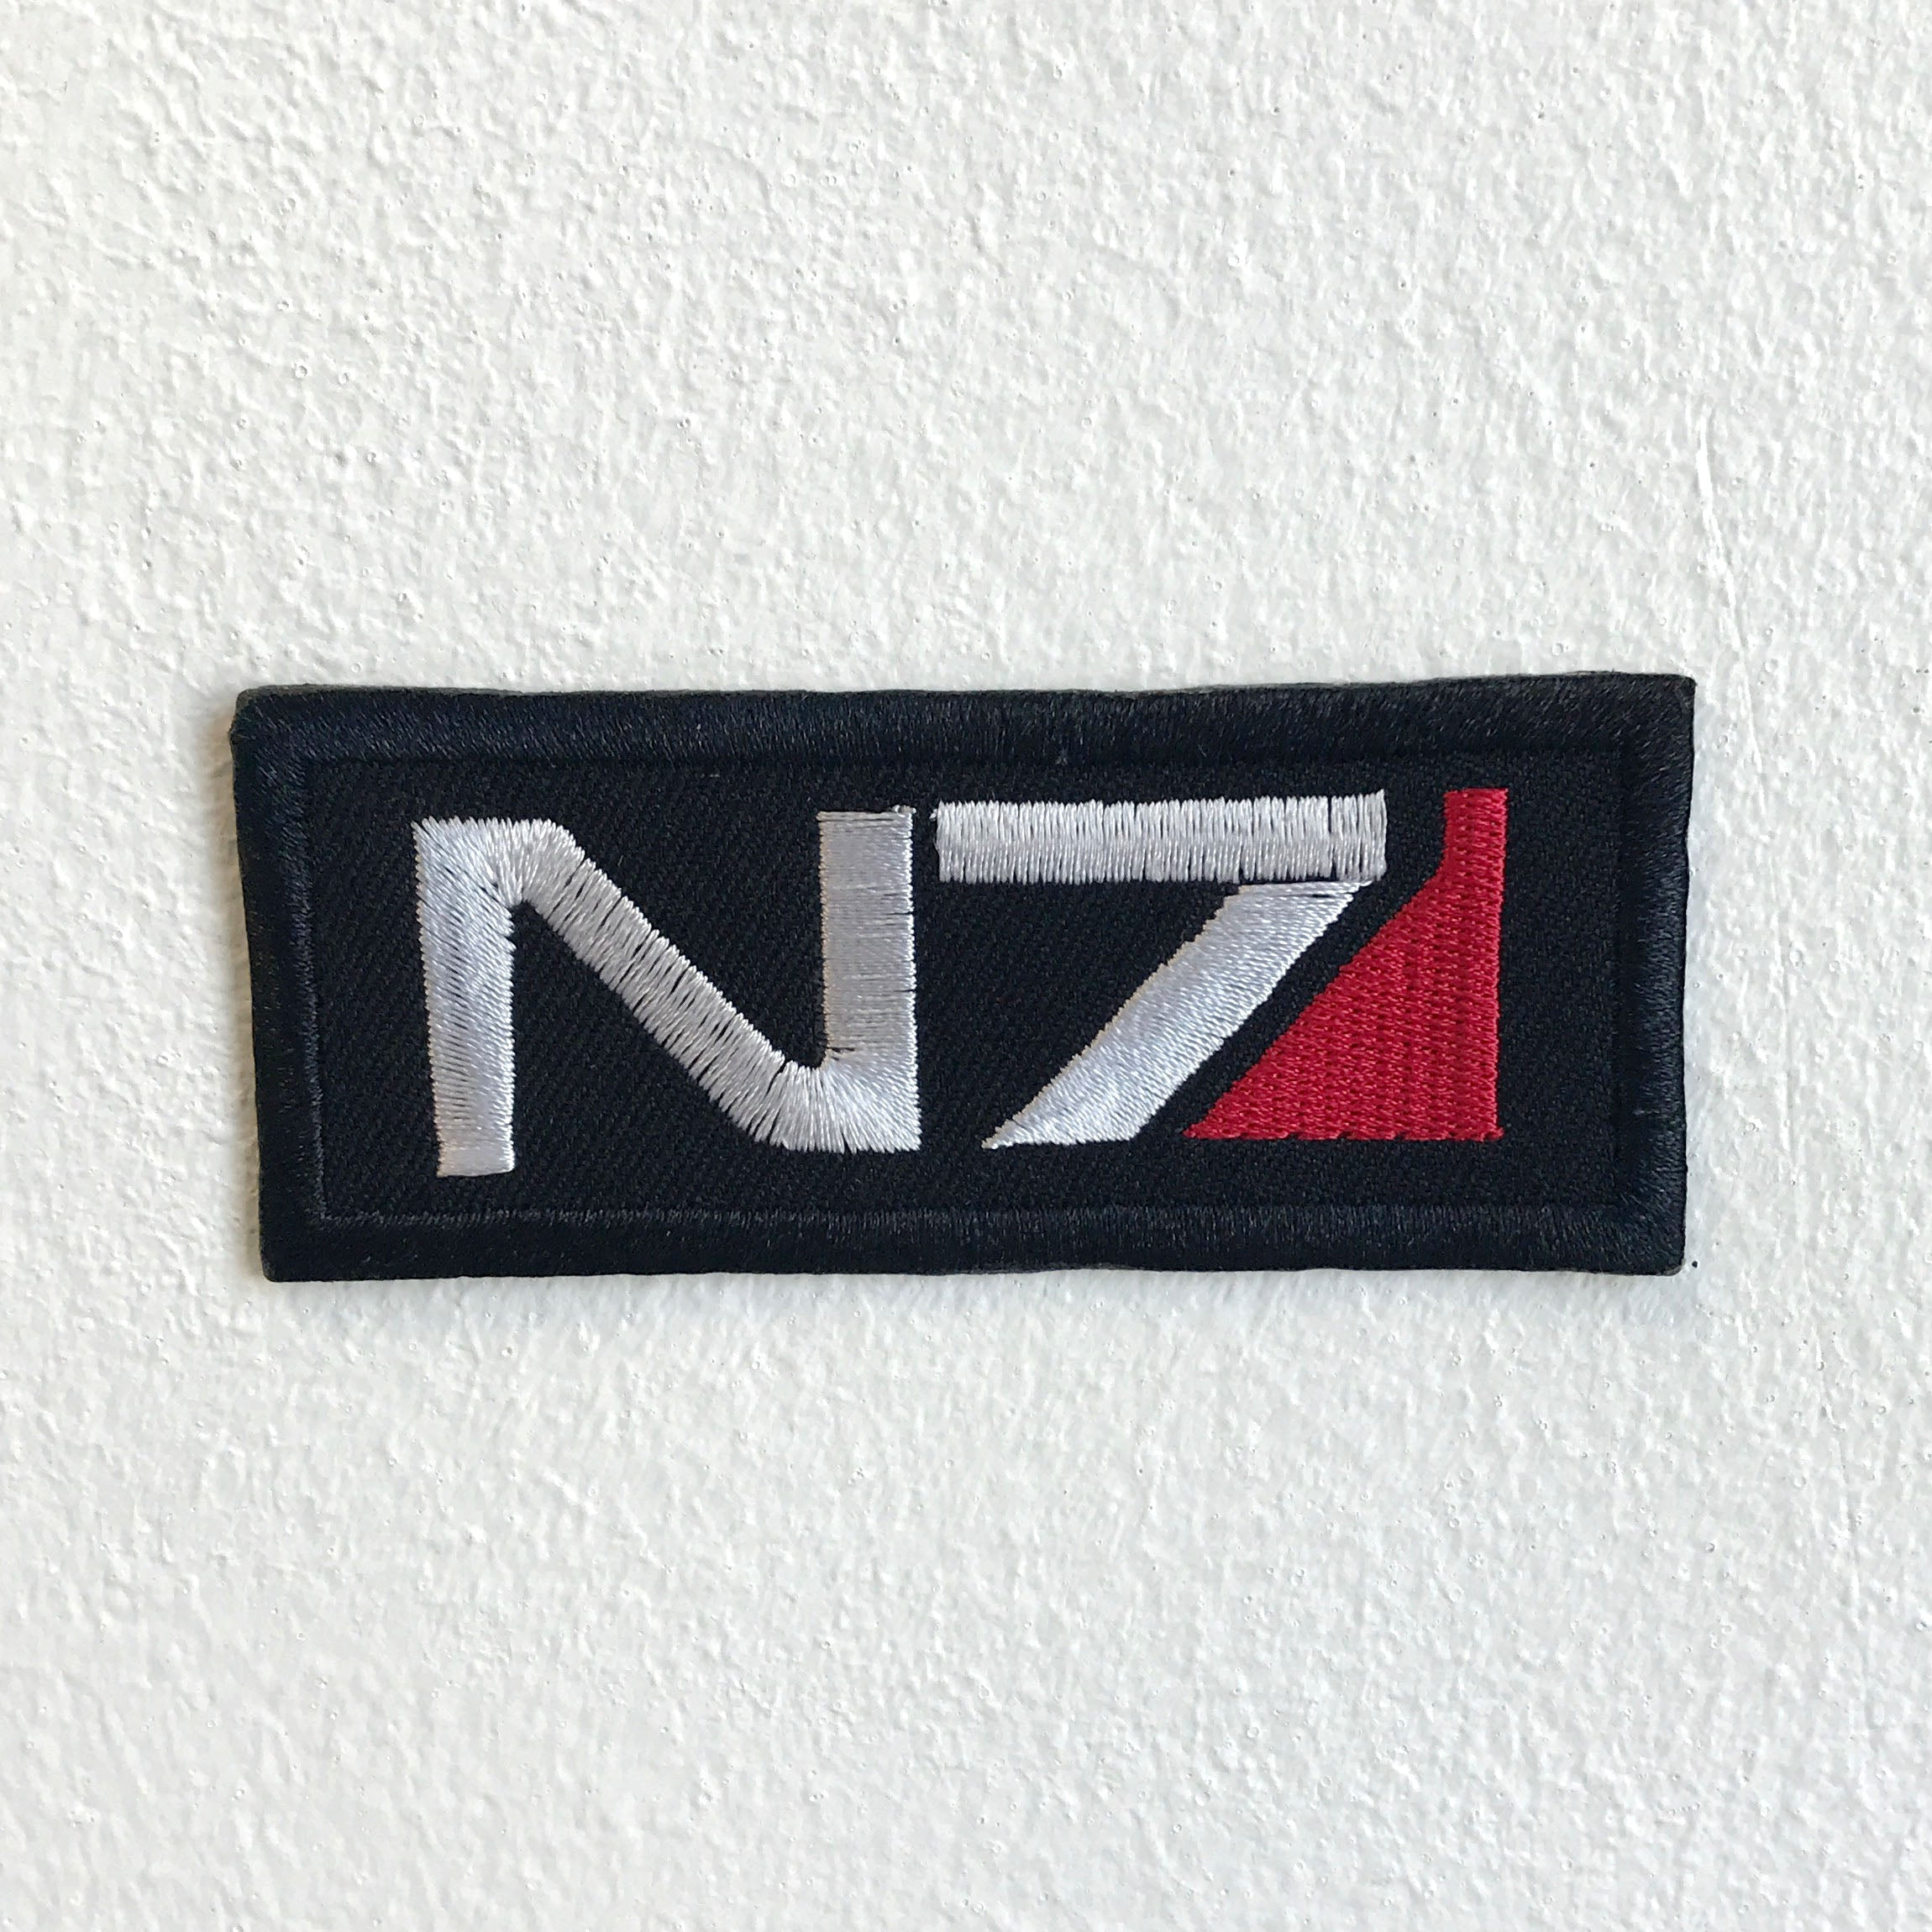 Alliance Military Systems N7 Badge logo Iron Sew on Embroidered Patch - Patches-Badges